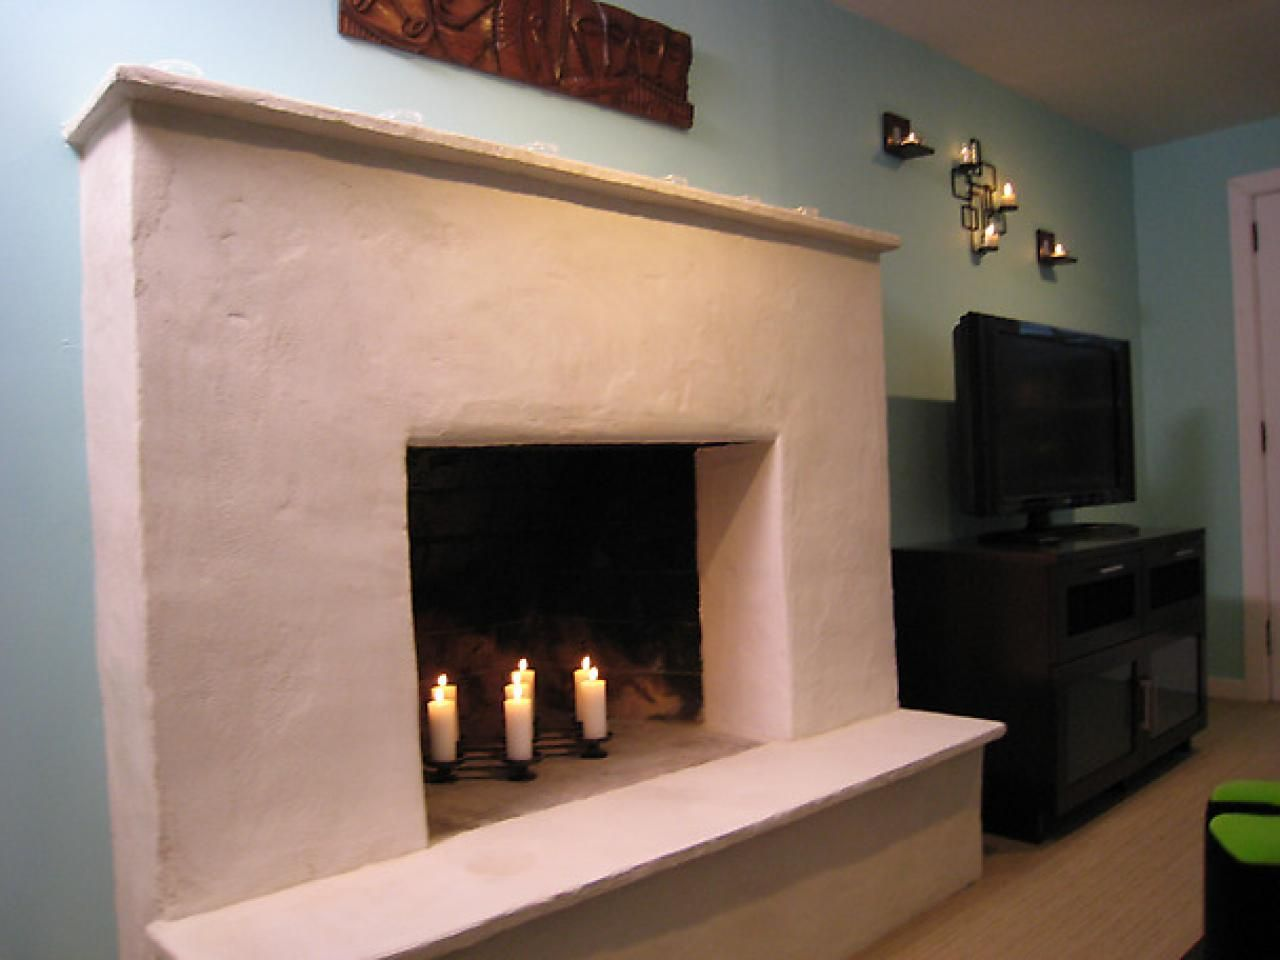 Weekend projects resurface a fireplace with stucco hgtv weekend projects resurface a fireplace with stucco solutioingenieria Choice Image